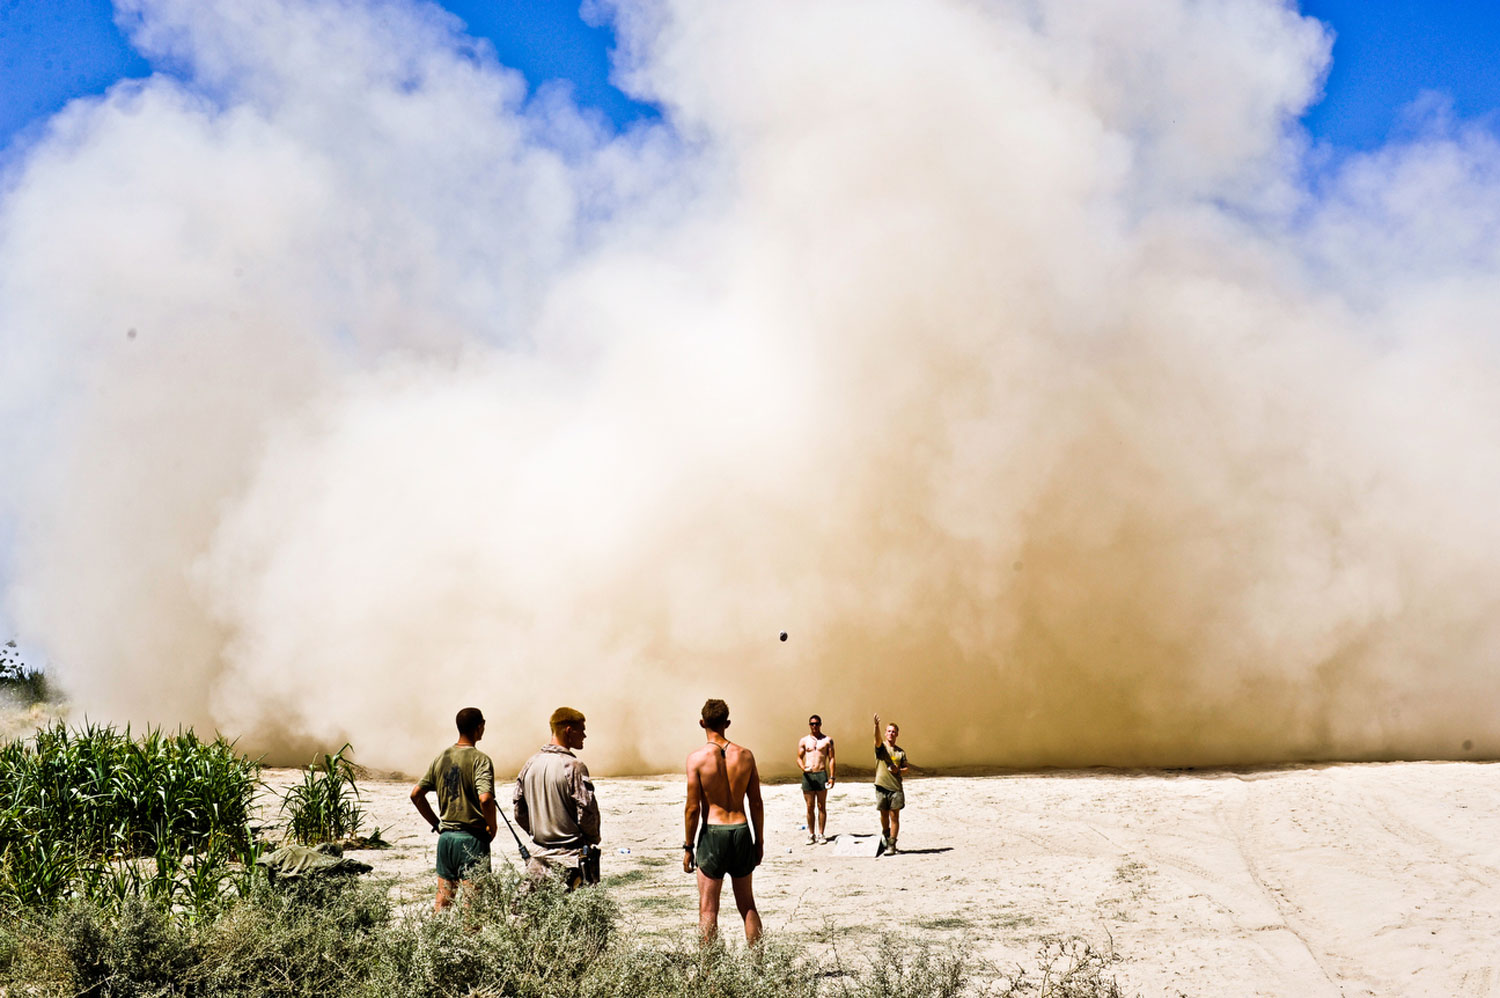 U.S. Marines play a game that tries to get beanbags in a hole as a helicopter lands in the background in a cloud of dust. Helmand Province, Iraq, 2008.